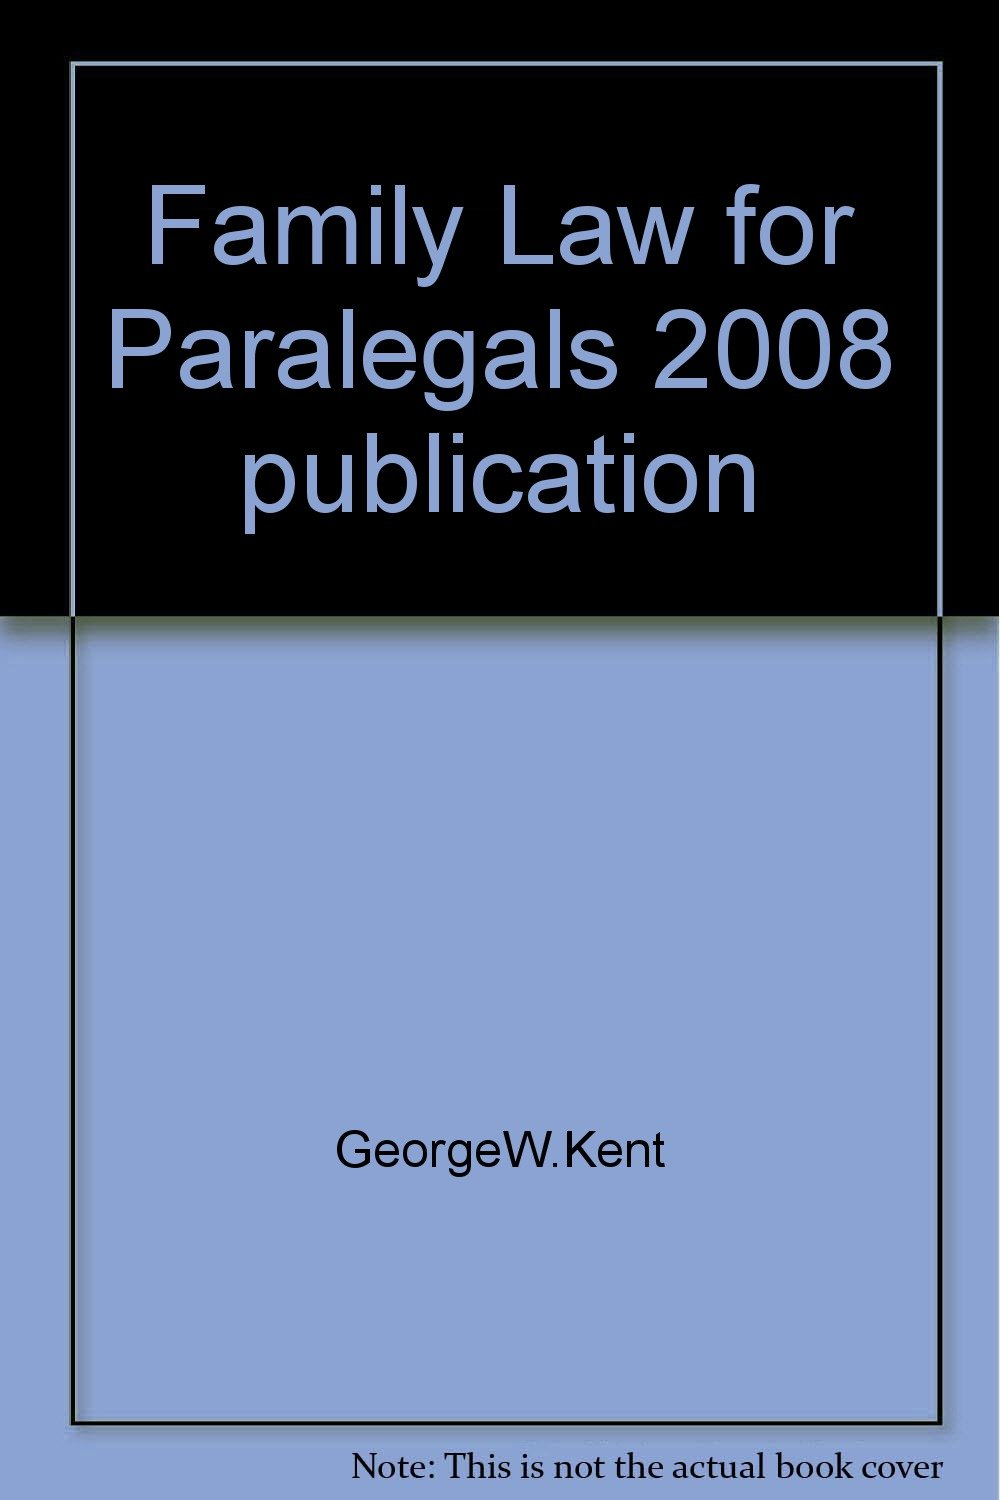 Family Law for Paralegals 2008 publication PDF